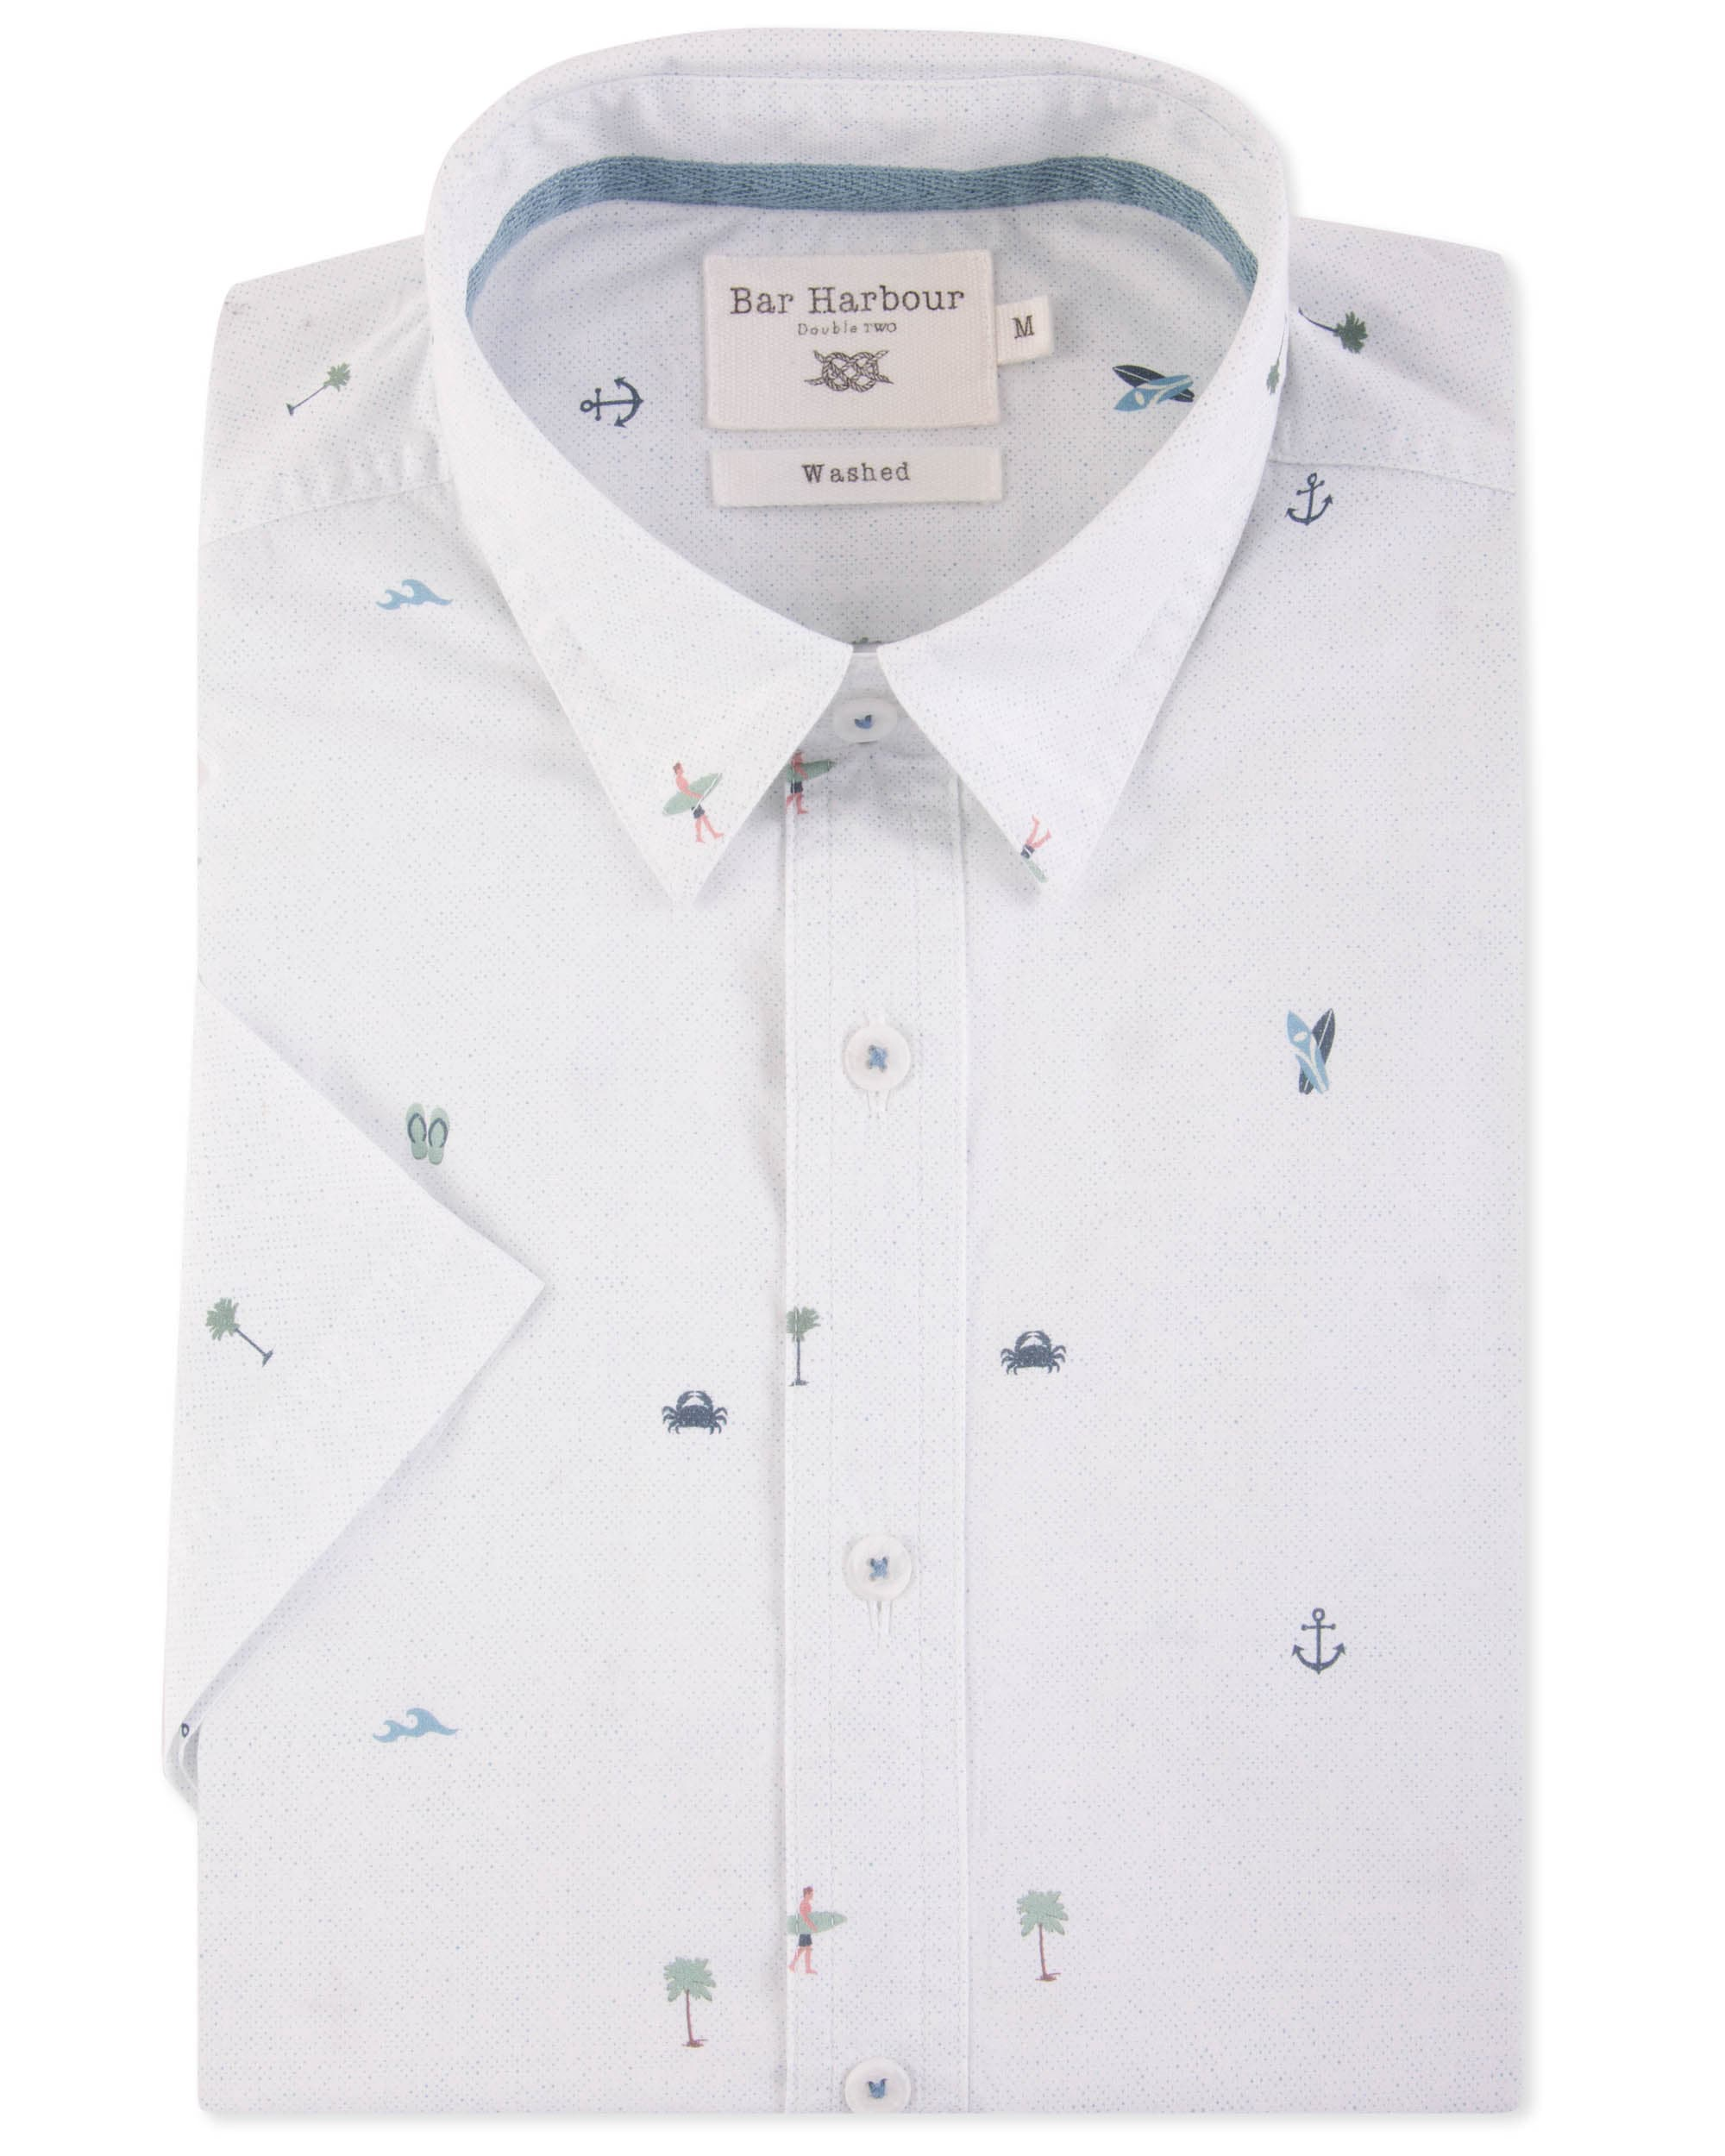 Shop Men's Casual Shirts